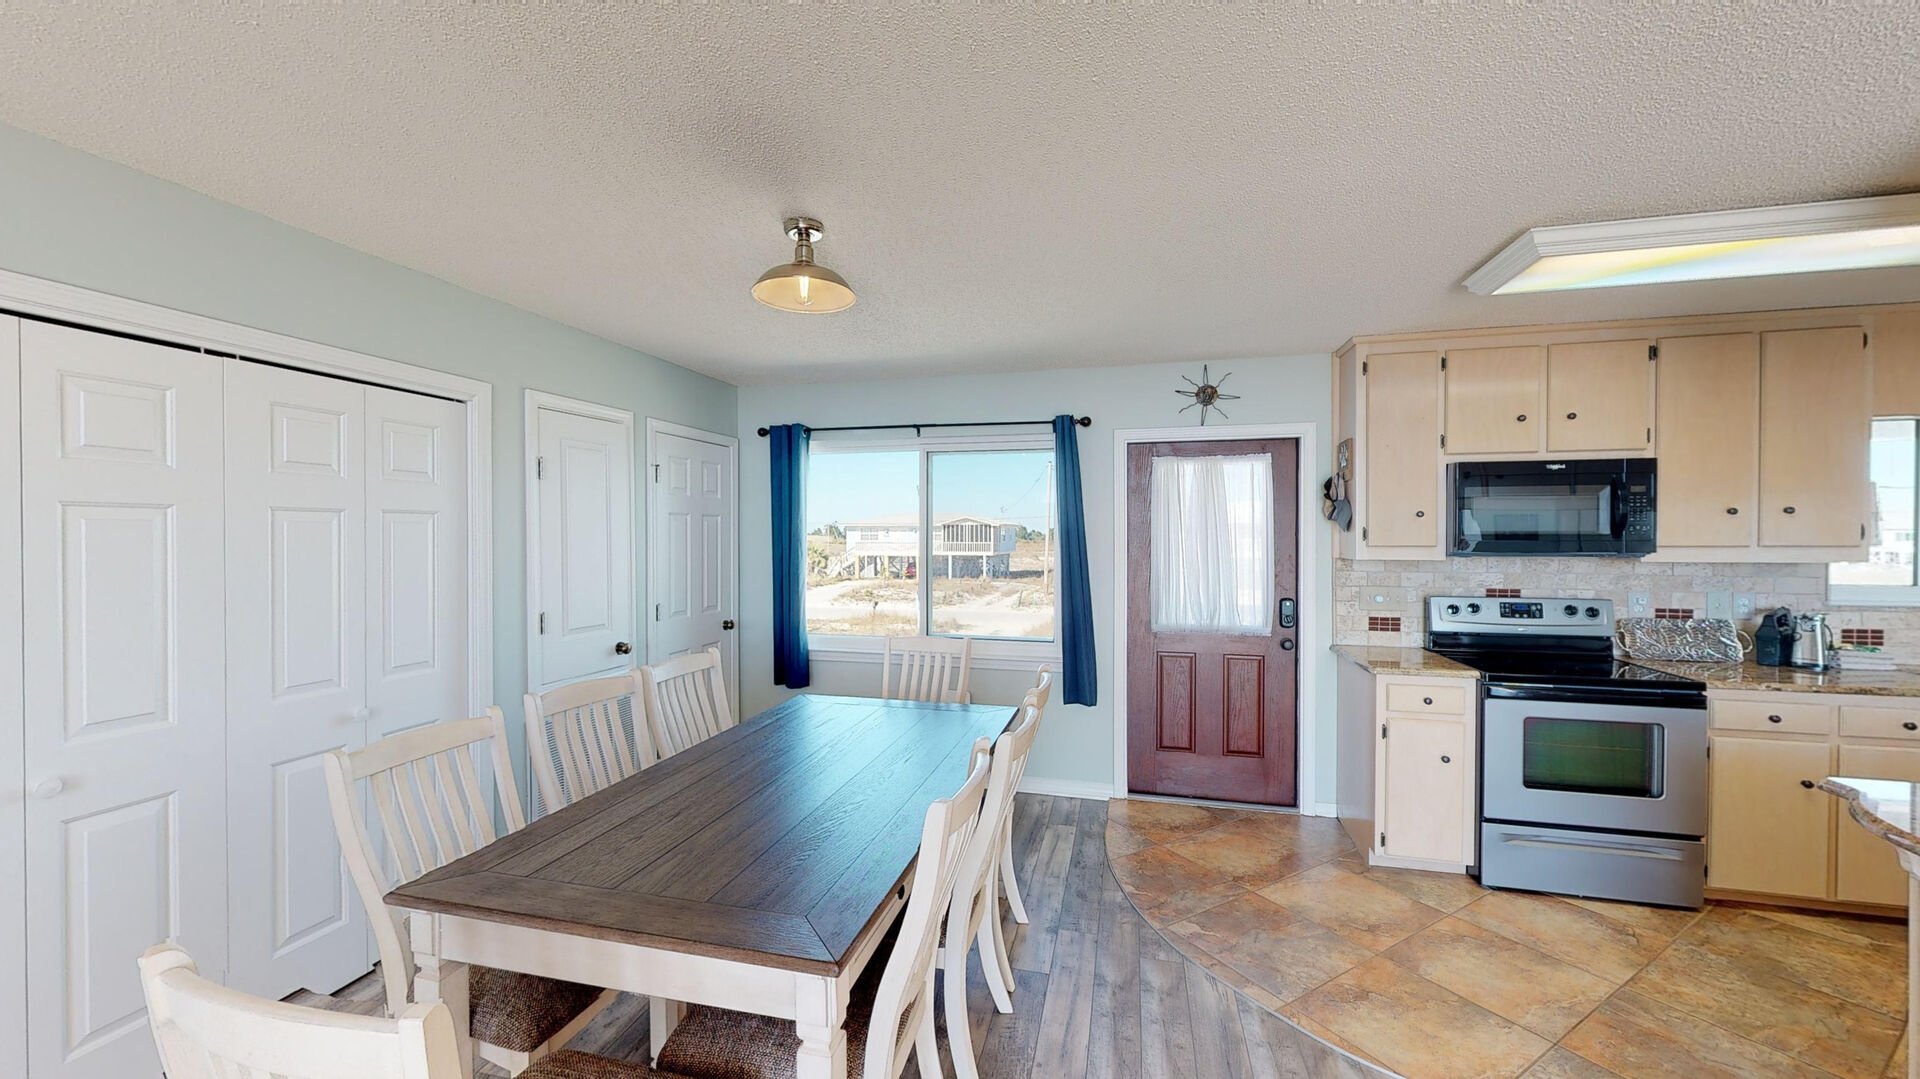 Open Dining and Kitchen Area in Ft Morgan Al Vacation Rental.